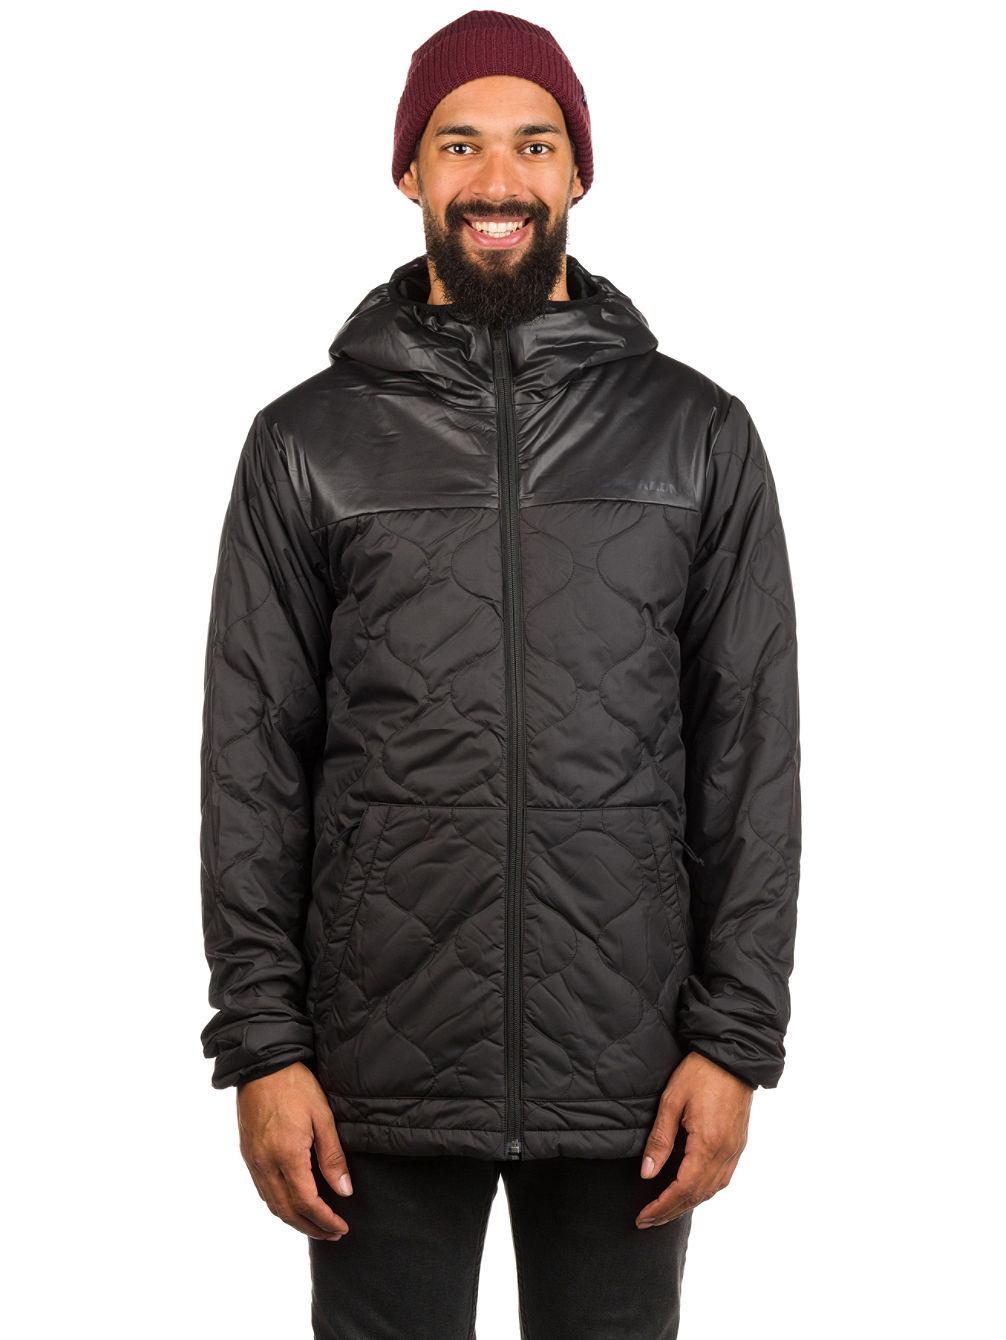 9e03be4adc3d8 Buy Armada Gremlin Jacket online at Blue Tomato